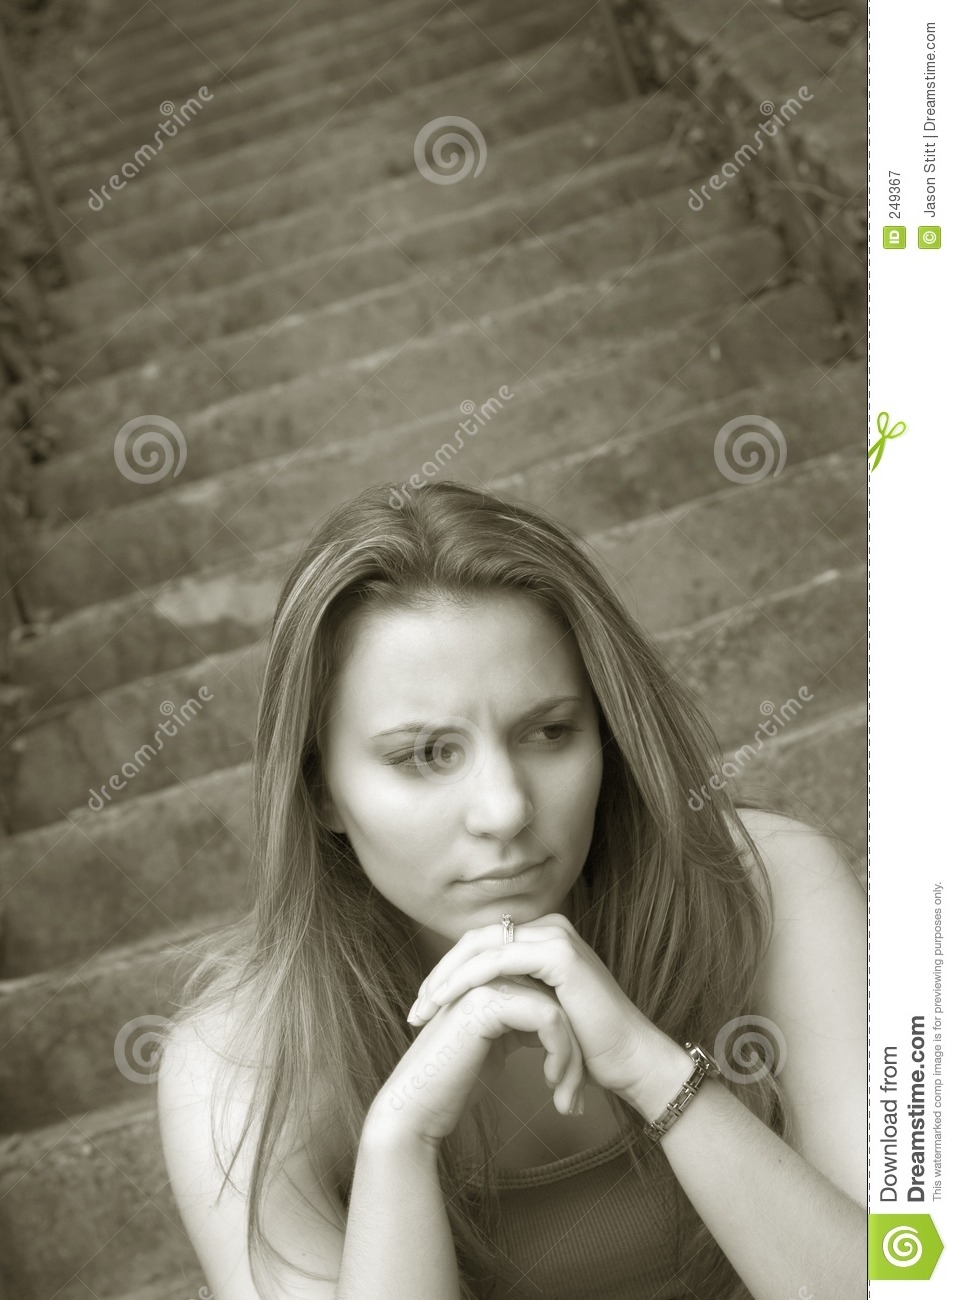 Lonely And Depressed >> Sad Girl stock image. Image of teens, mourning, young, alone - 249367